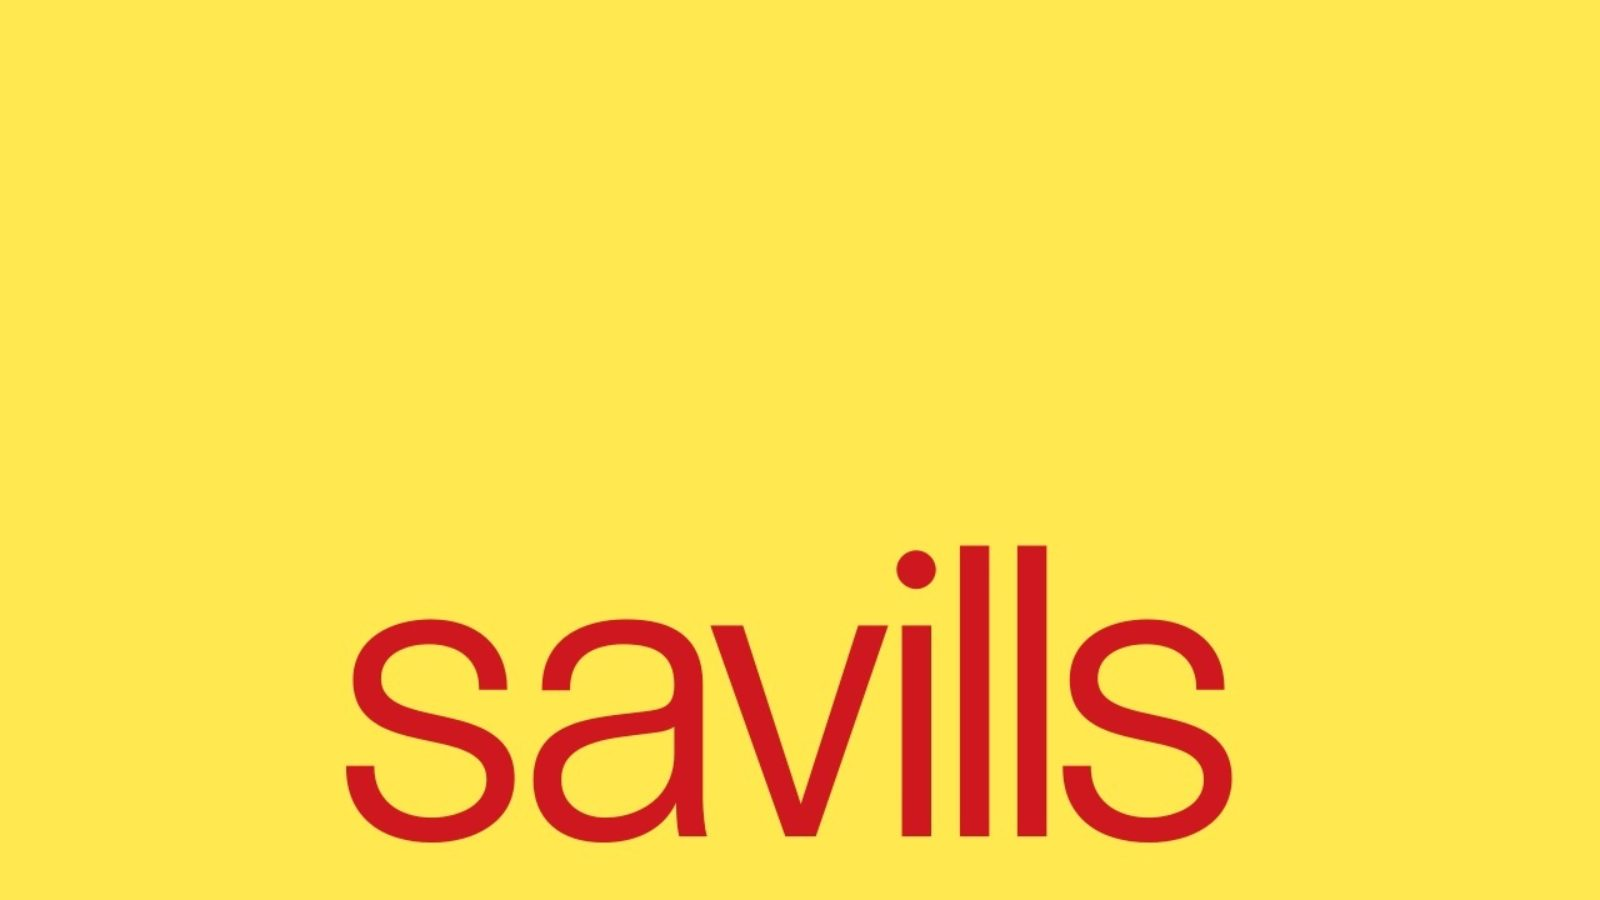 Savills, the international real estate advisor, today announces its unaudited results for the six months ended 30 June 2020